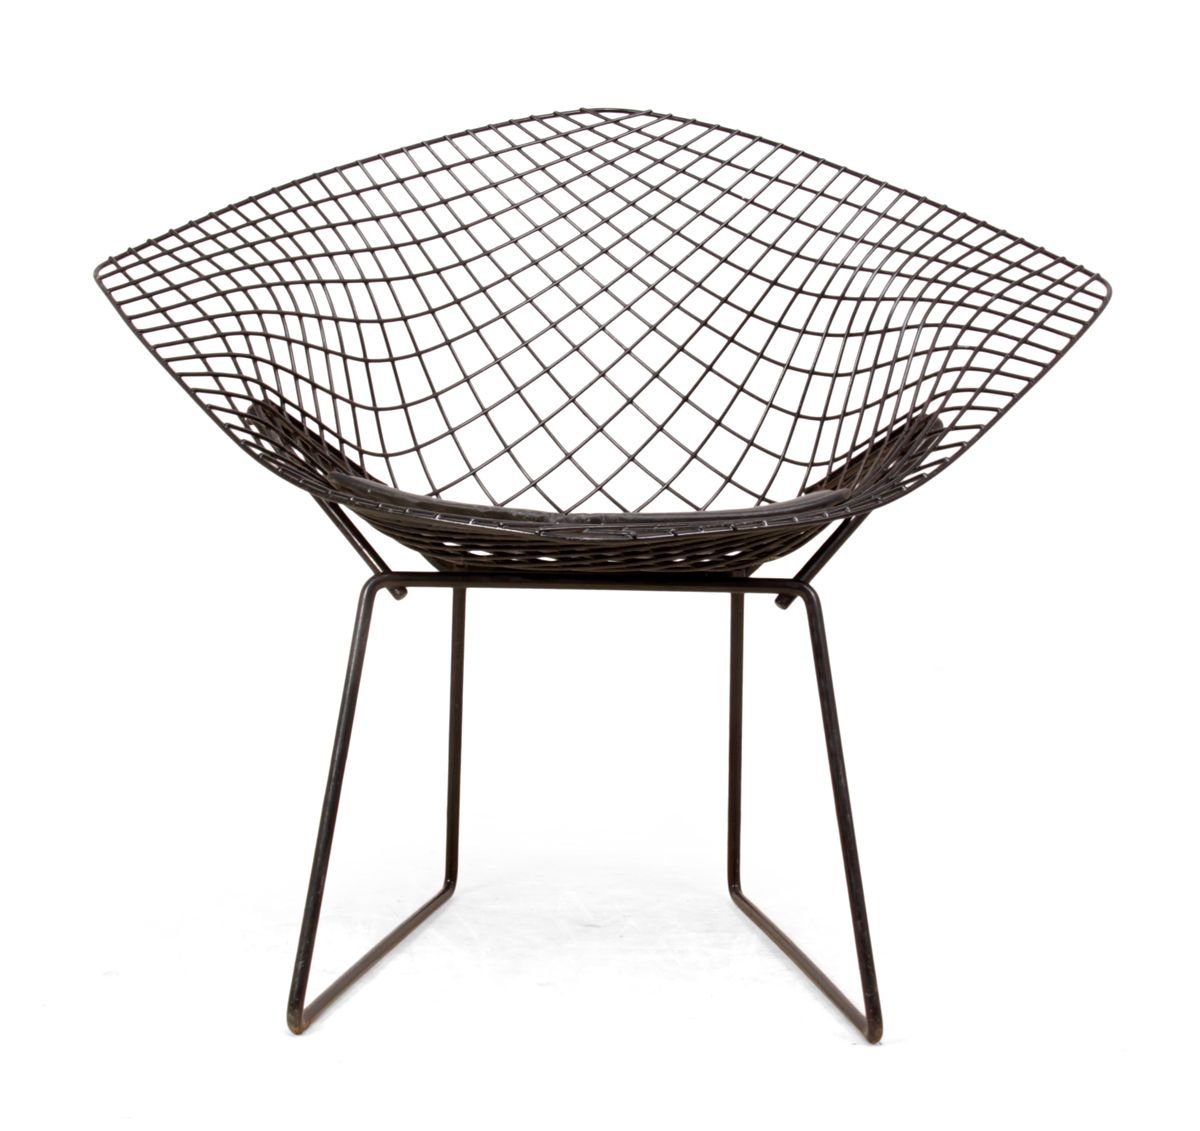 Chaise diamond par harry bertoia 1960s en vente sur pamono for Bertoia chaise prix